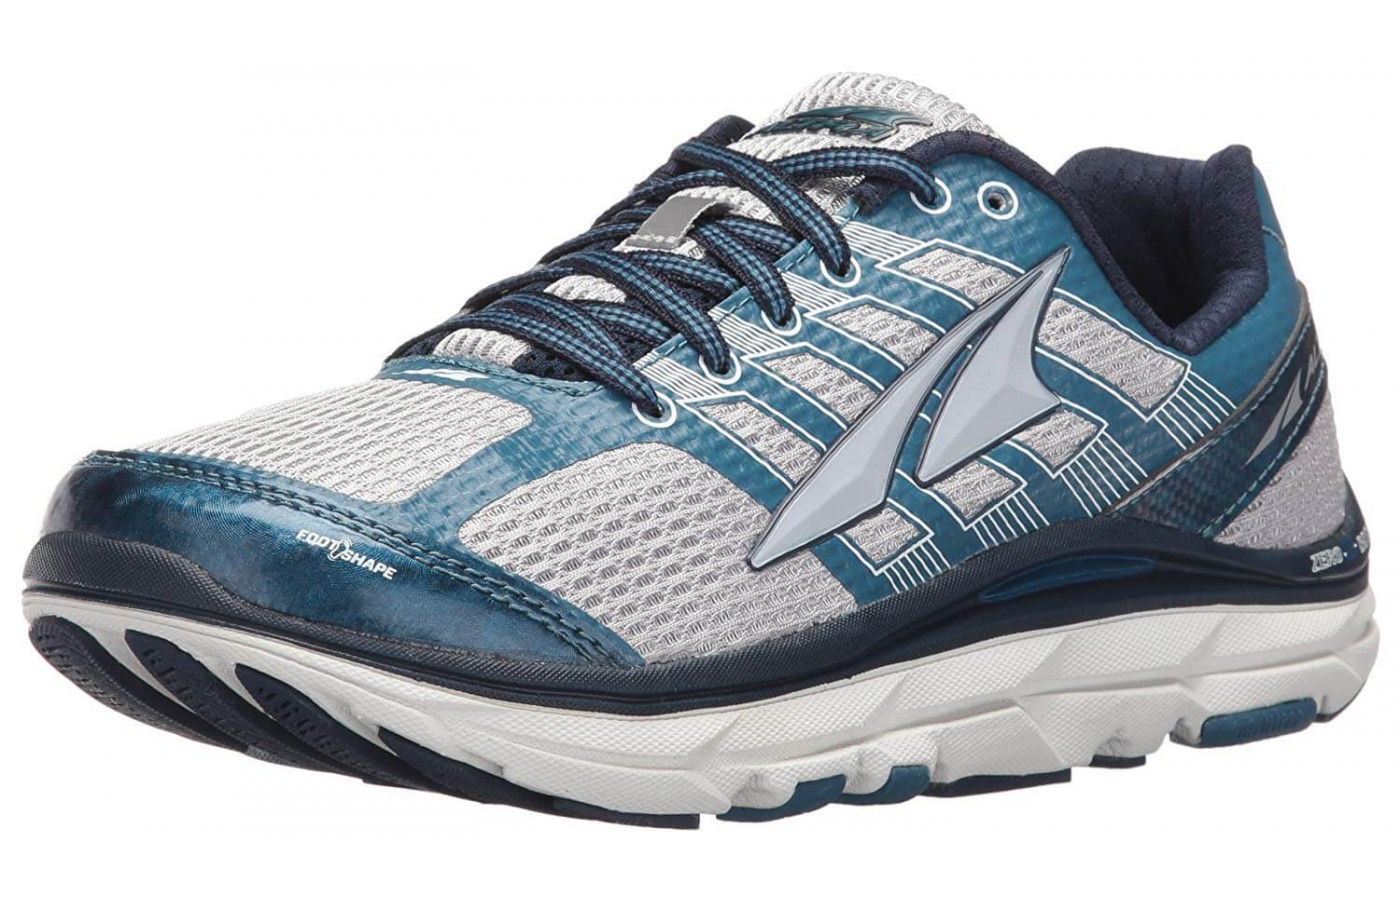 46609268f2 The Altra Provision 3.5 comes in a variety of colorways ...